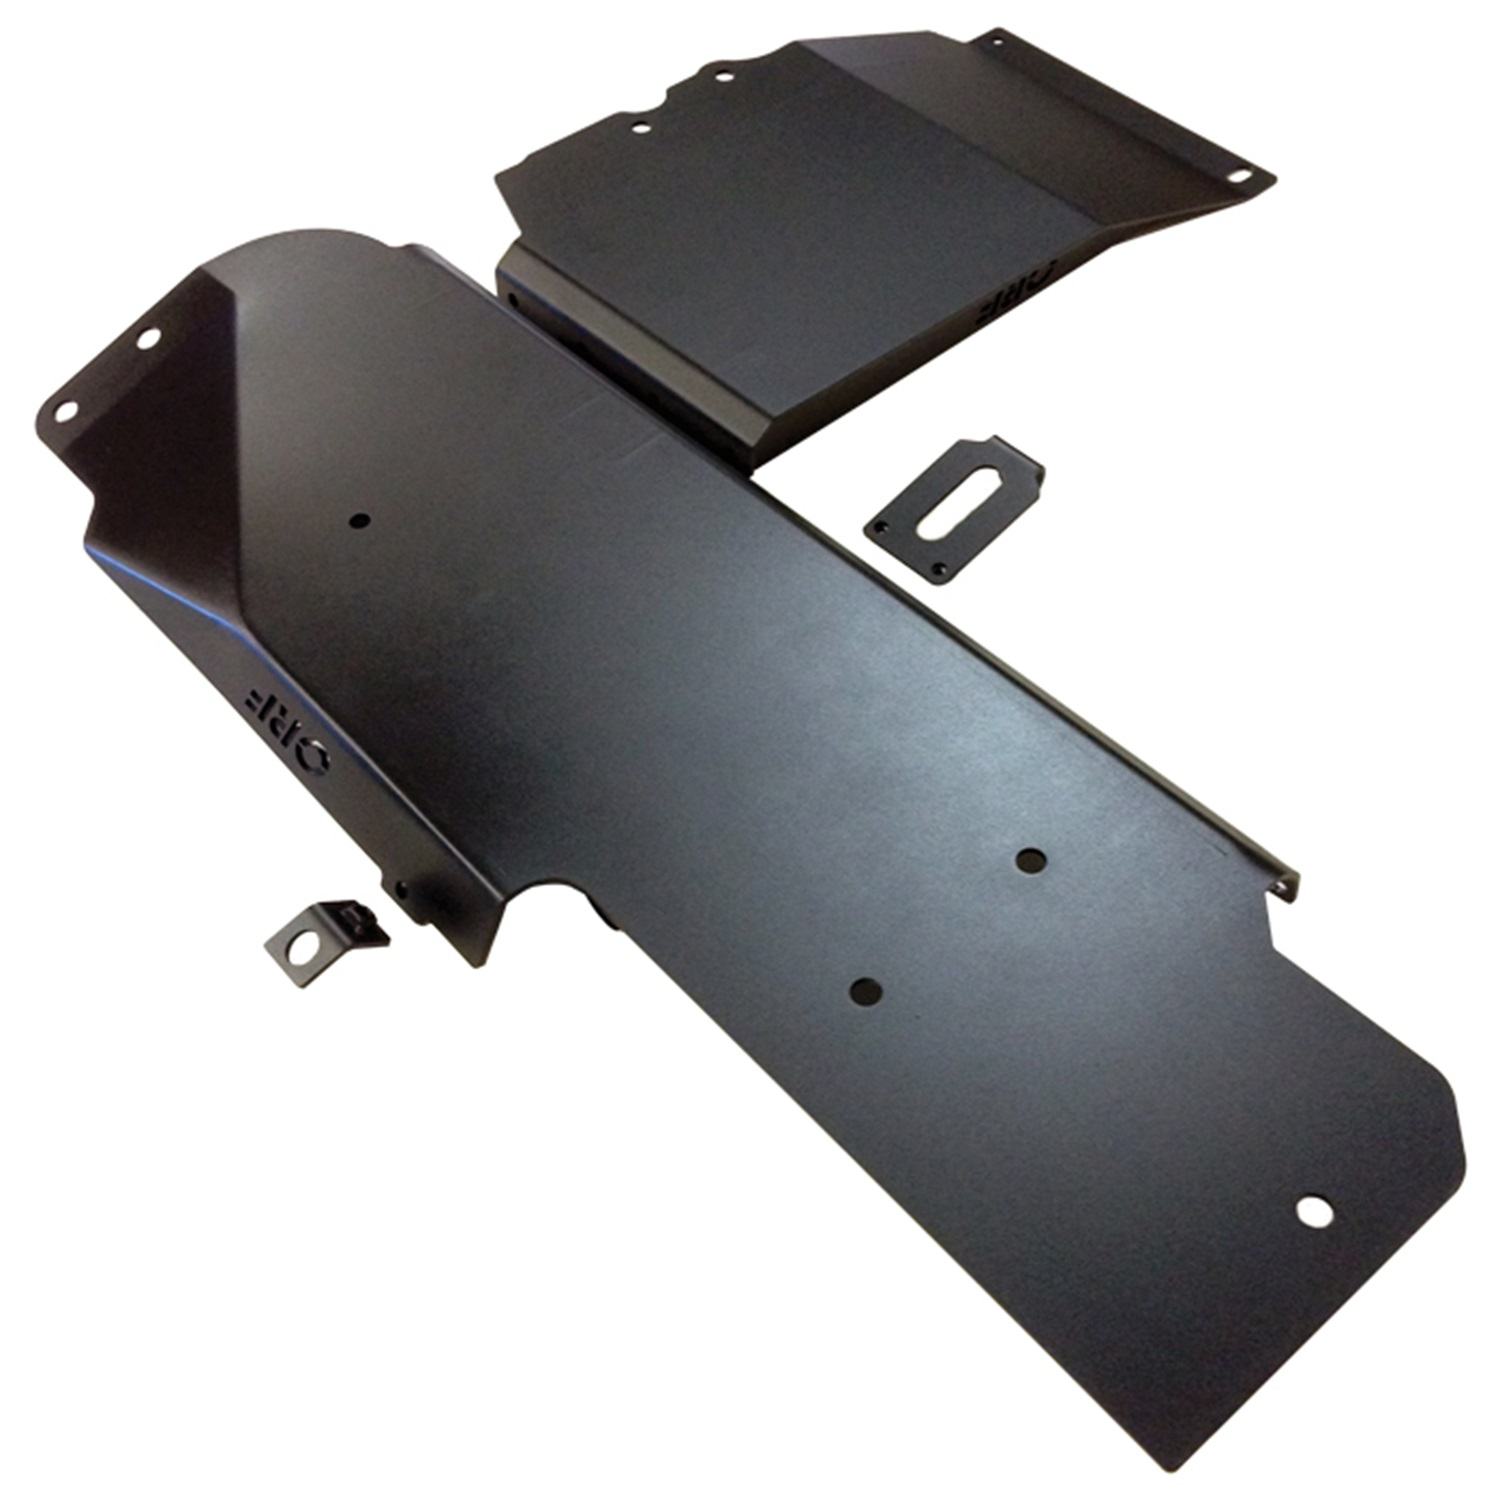 OR-FAB 87062 Skid Plate; Wrinkle Black; HD; For Fuel Tank; Also Covers Transfer Case;